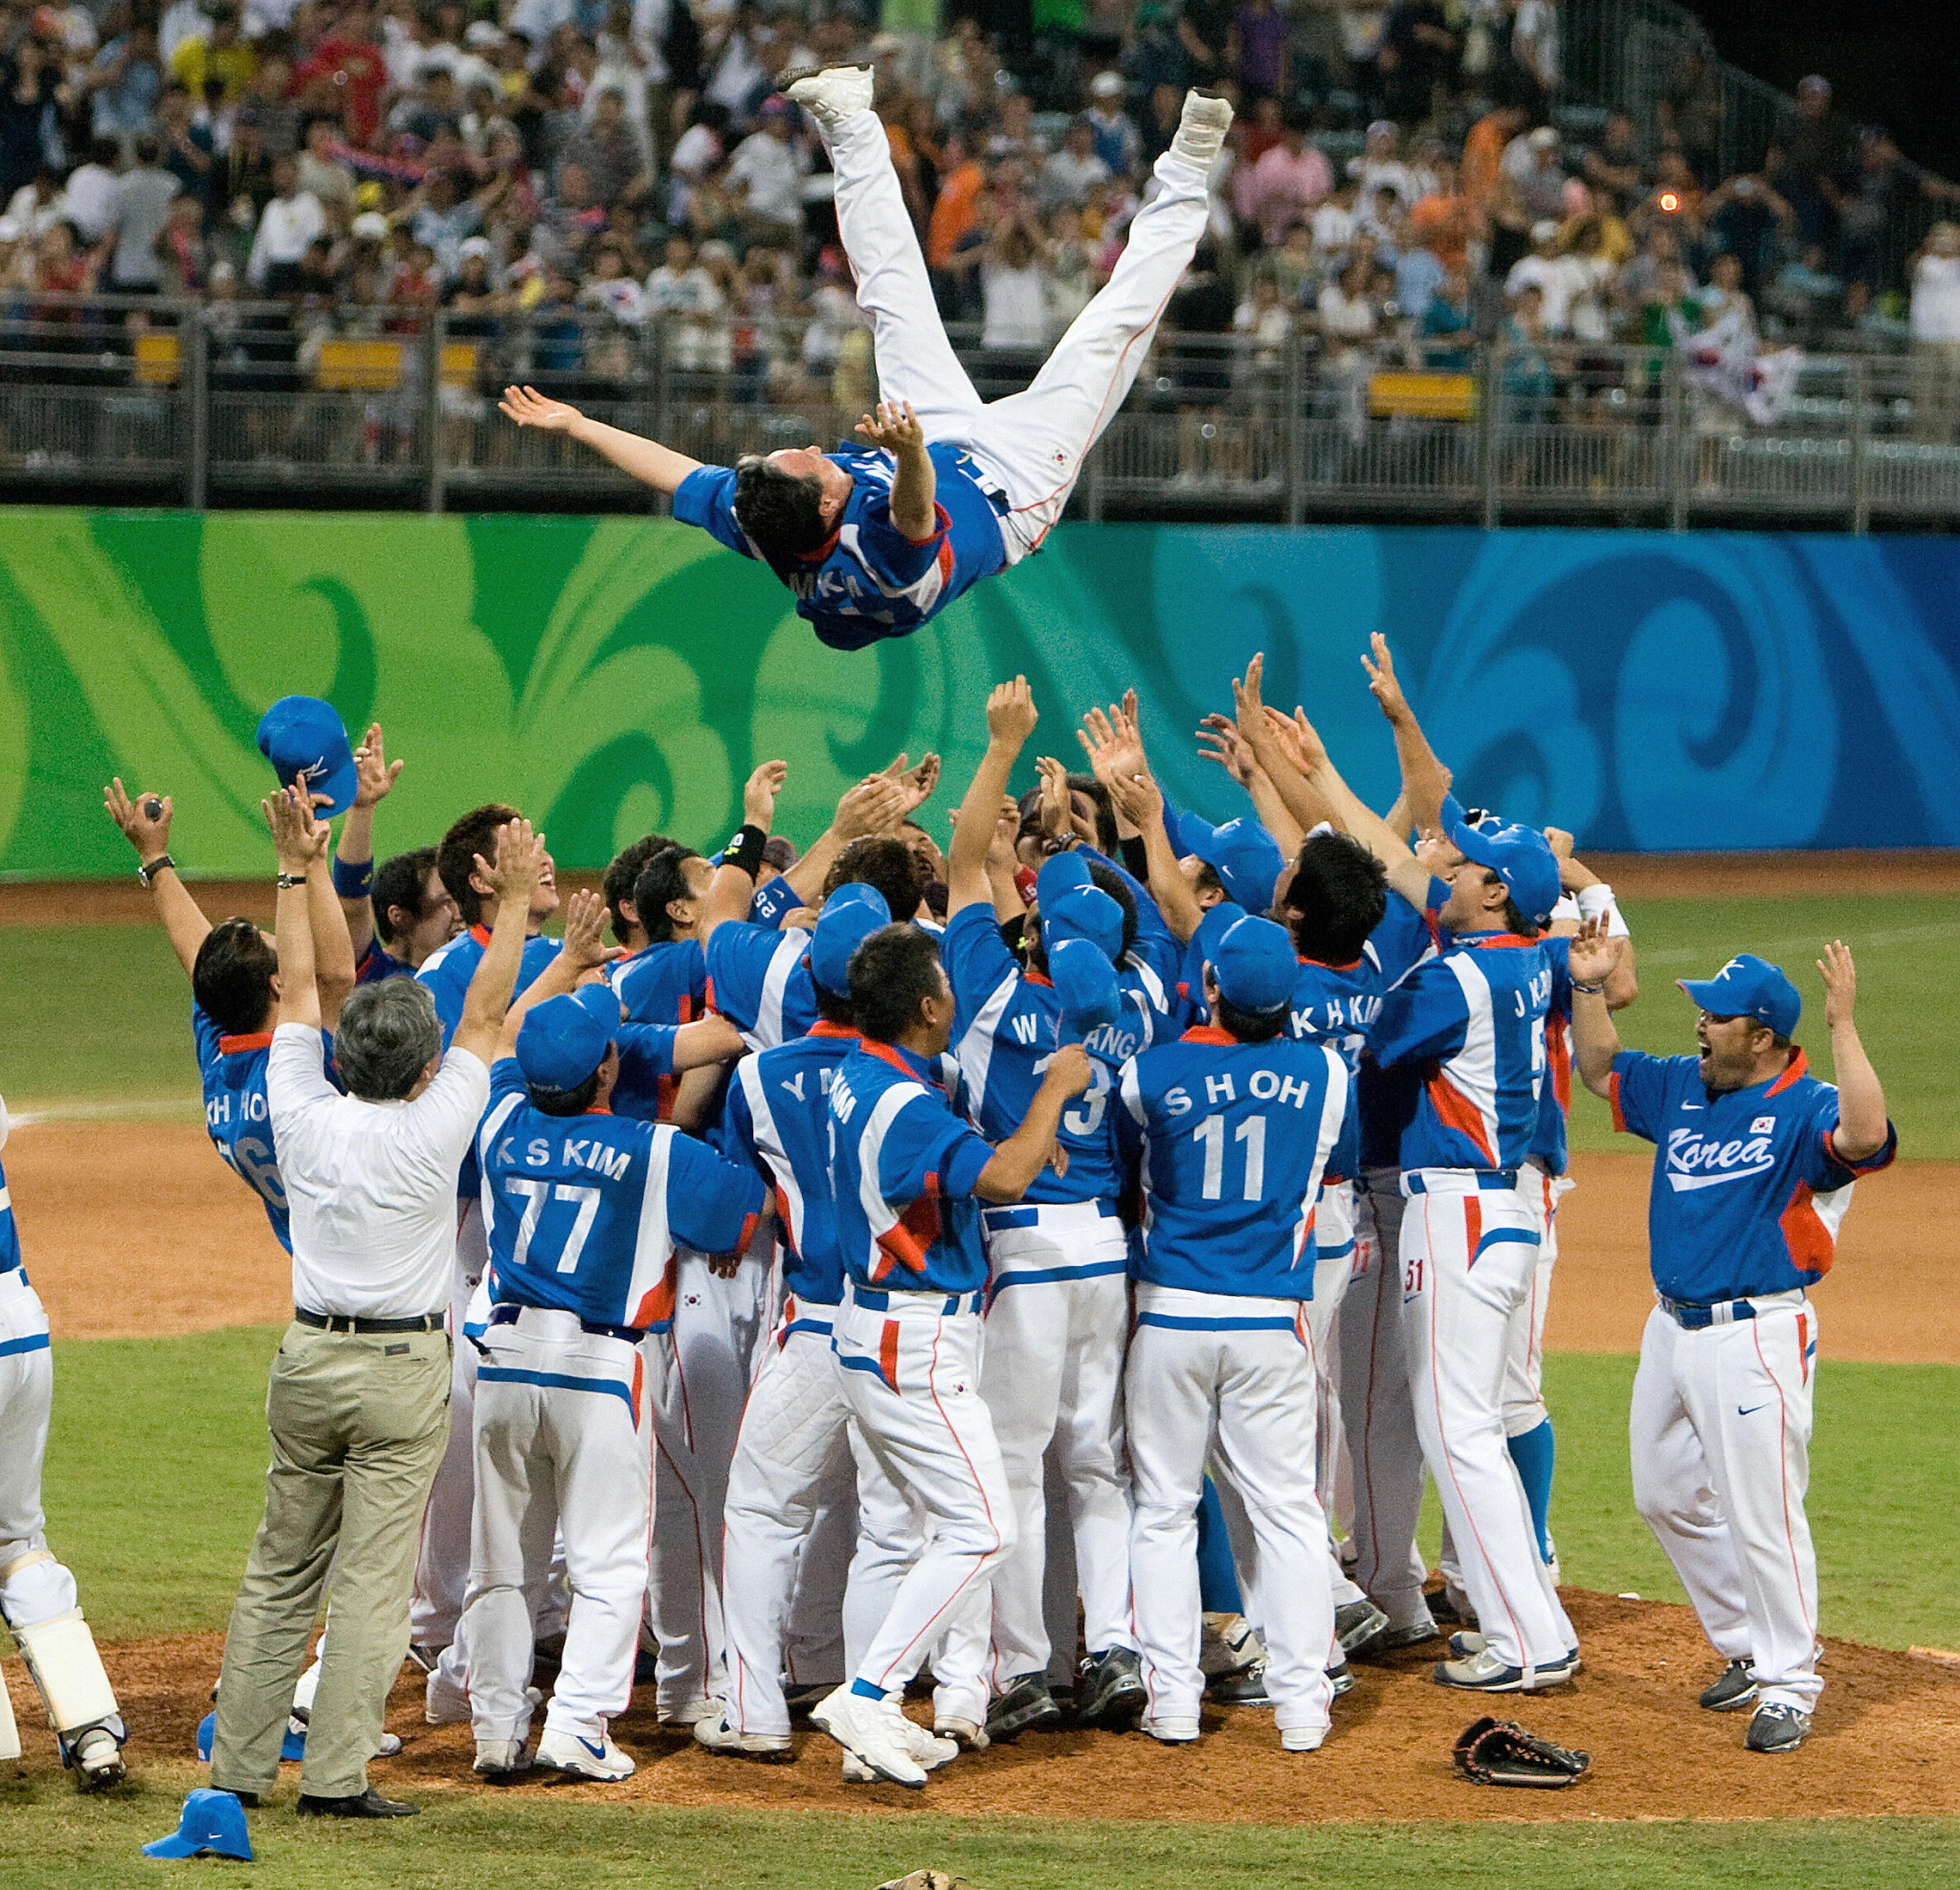 South Korea dreaming of baseball success at Tokyo 2020 Olympics as Beijing 2008 gold-winning manager returns to role